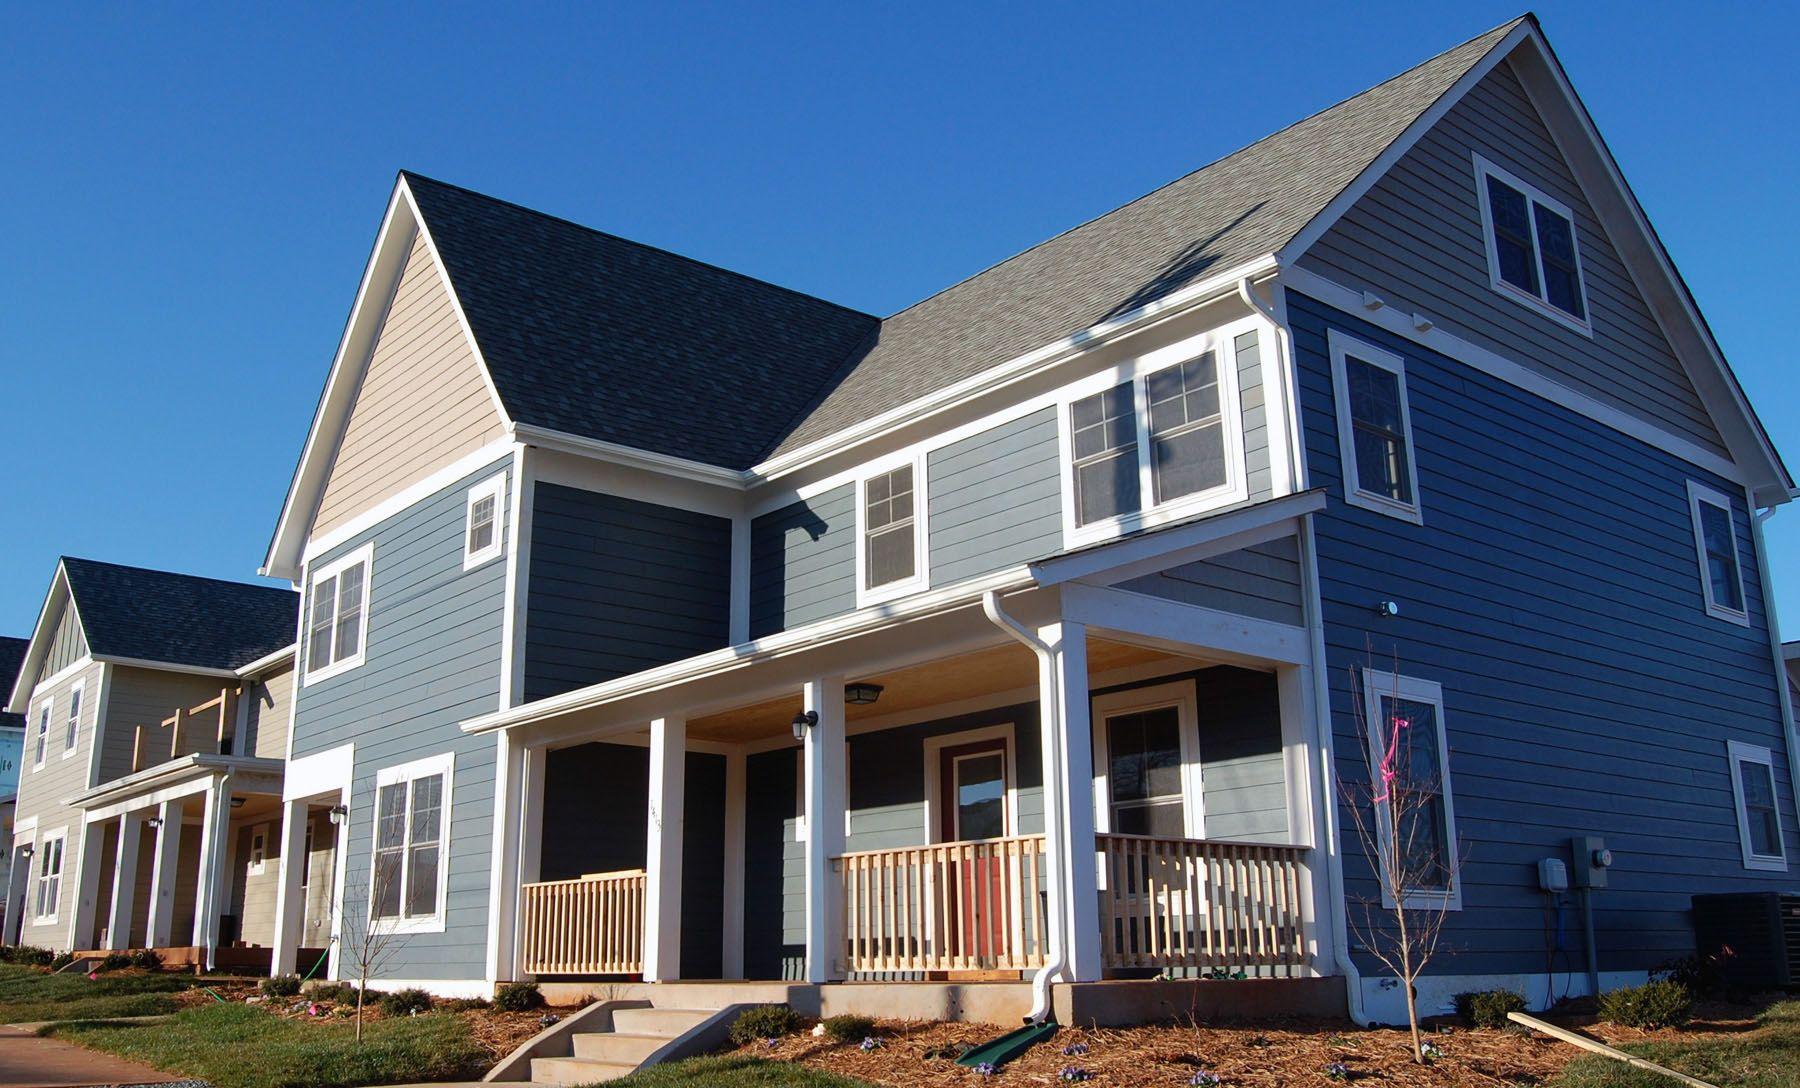 Habitat homes in the Sunrise Neighborhood